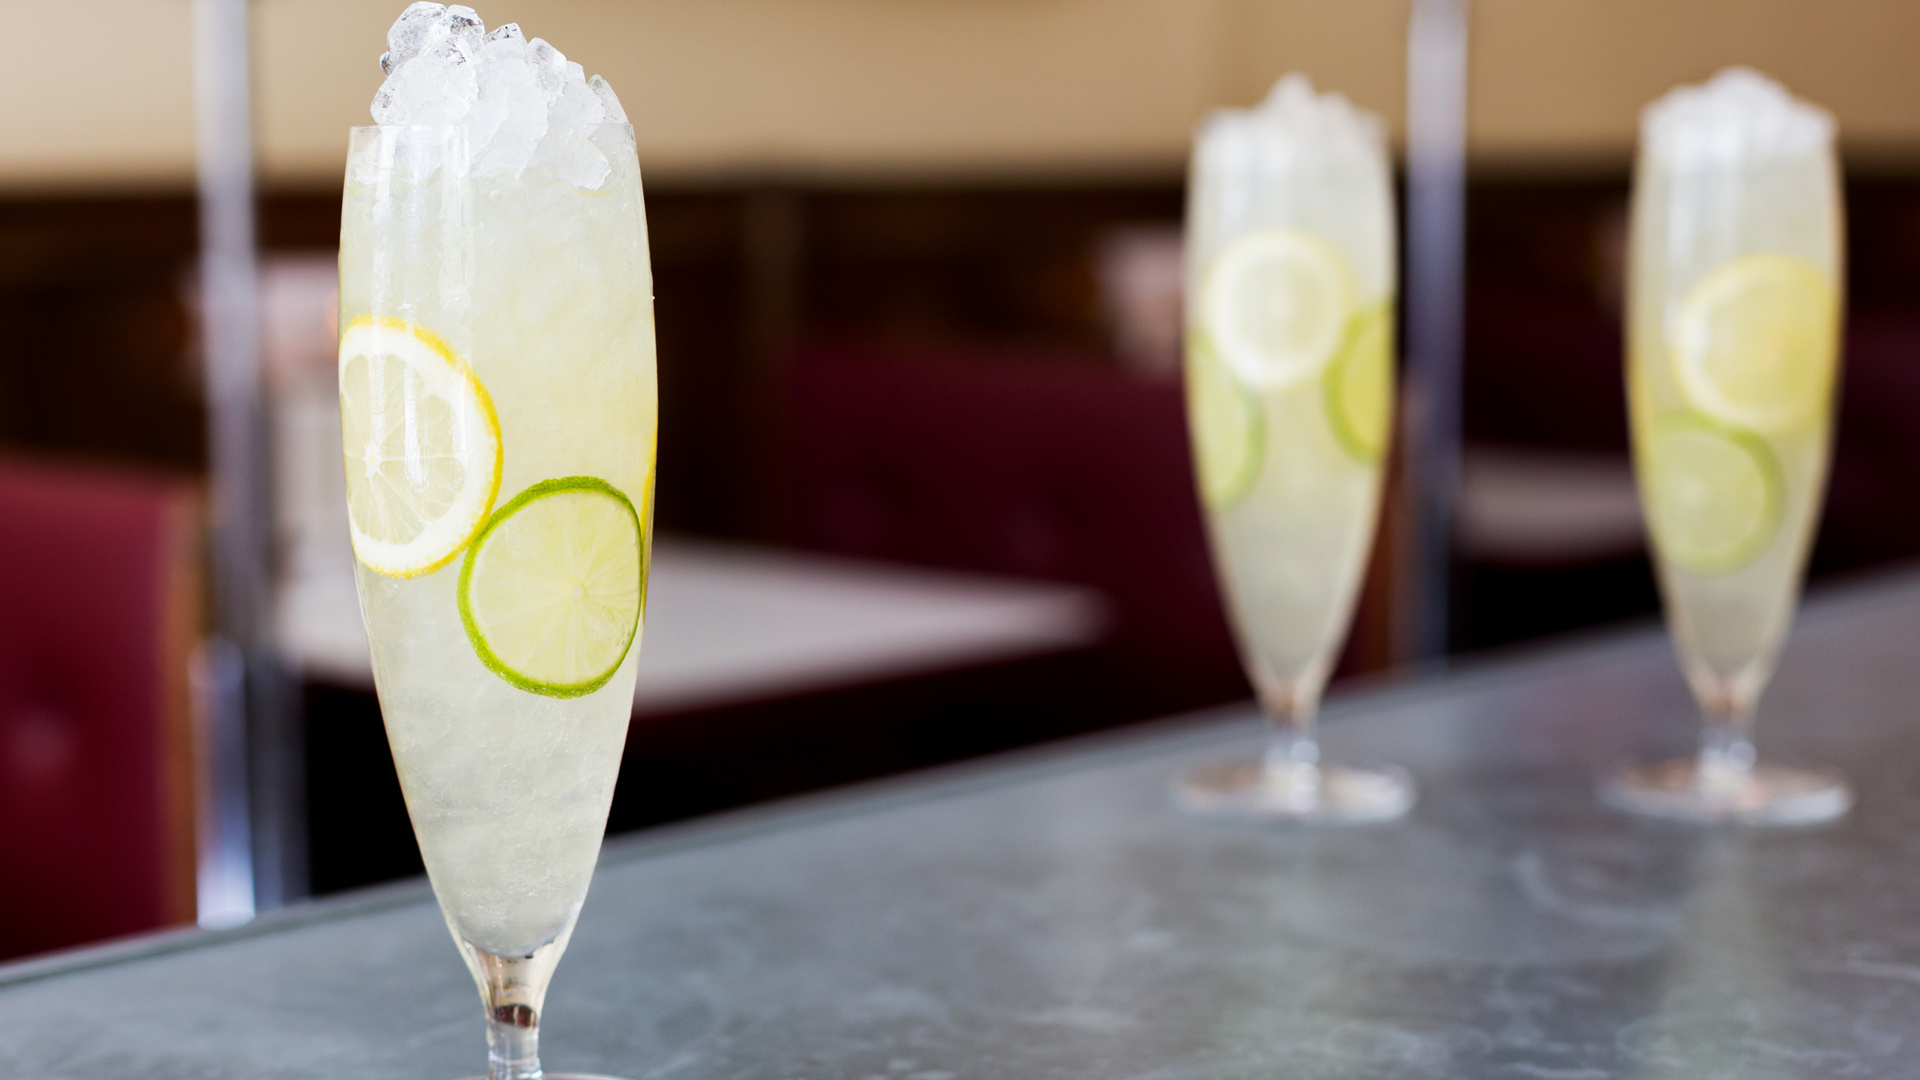 A simple citrus and sparkling wine cocktail recipe.